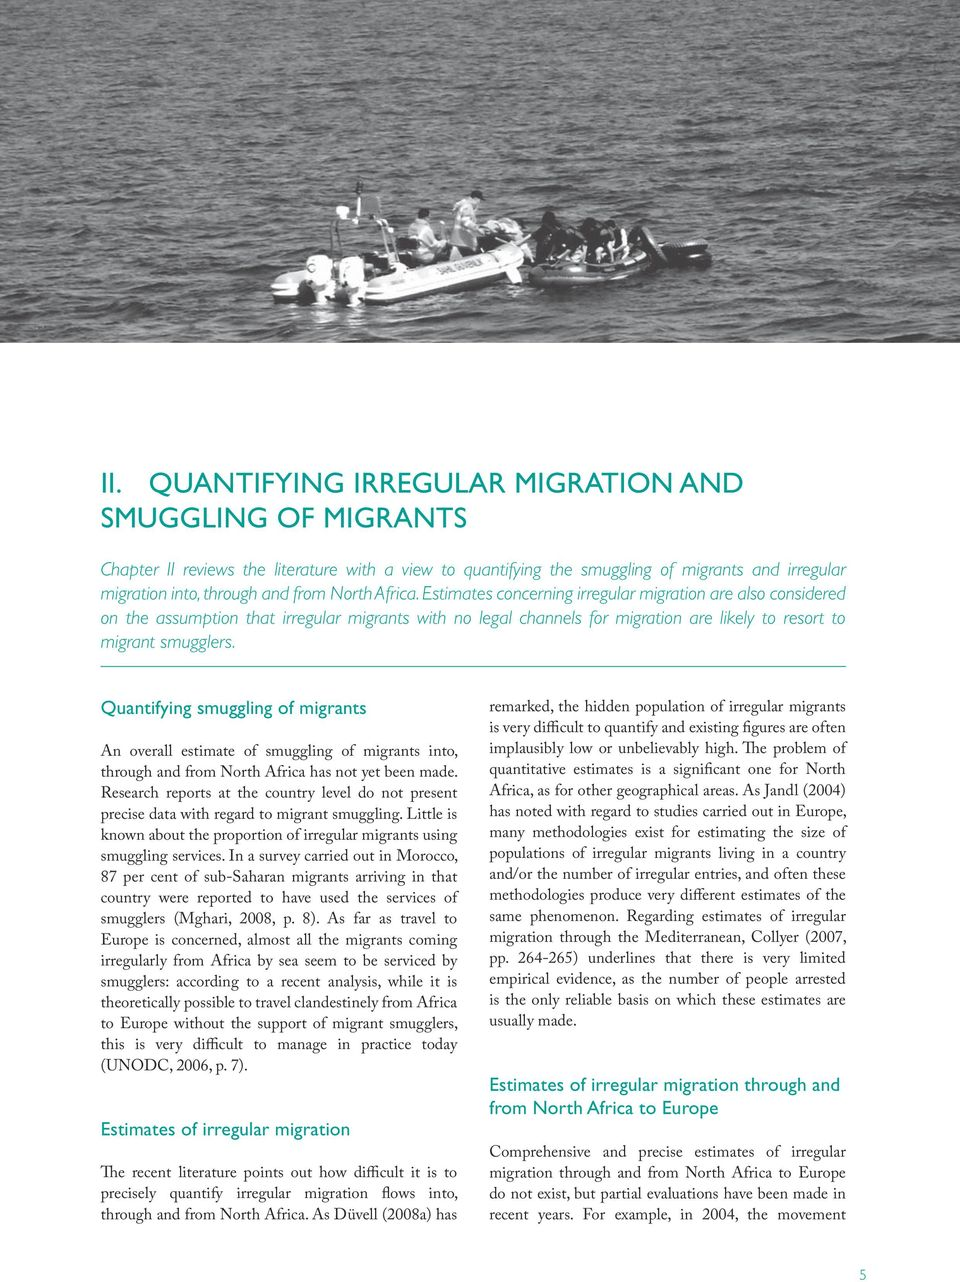 Quantifying smuggling of migrants An overall estimate of smuggling of migrants into, through and from North Africa has not yet been made.